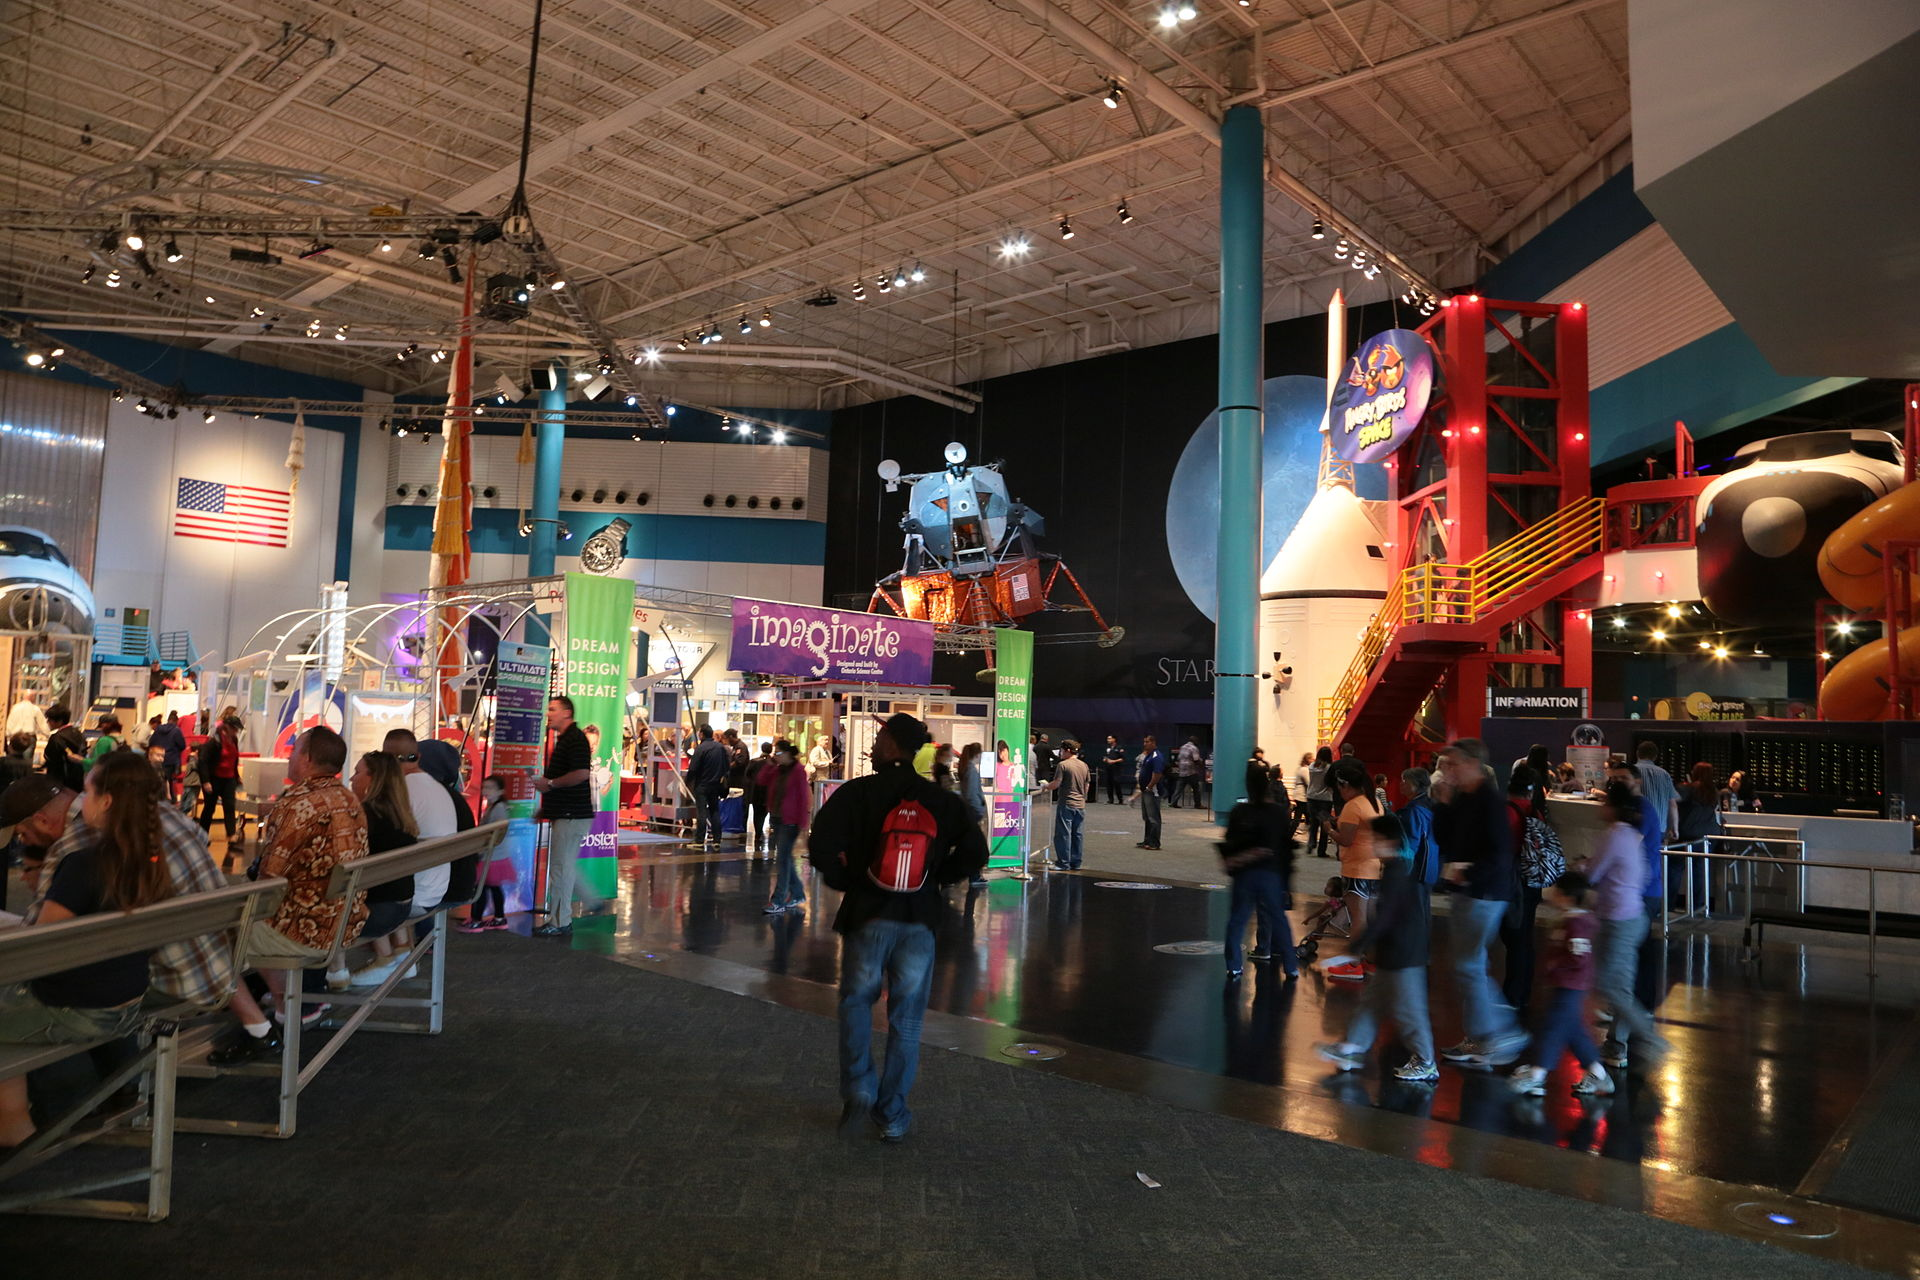 The Center features many permanent and traveling exhibits.